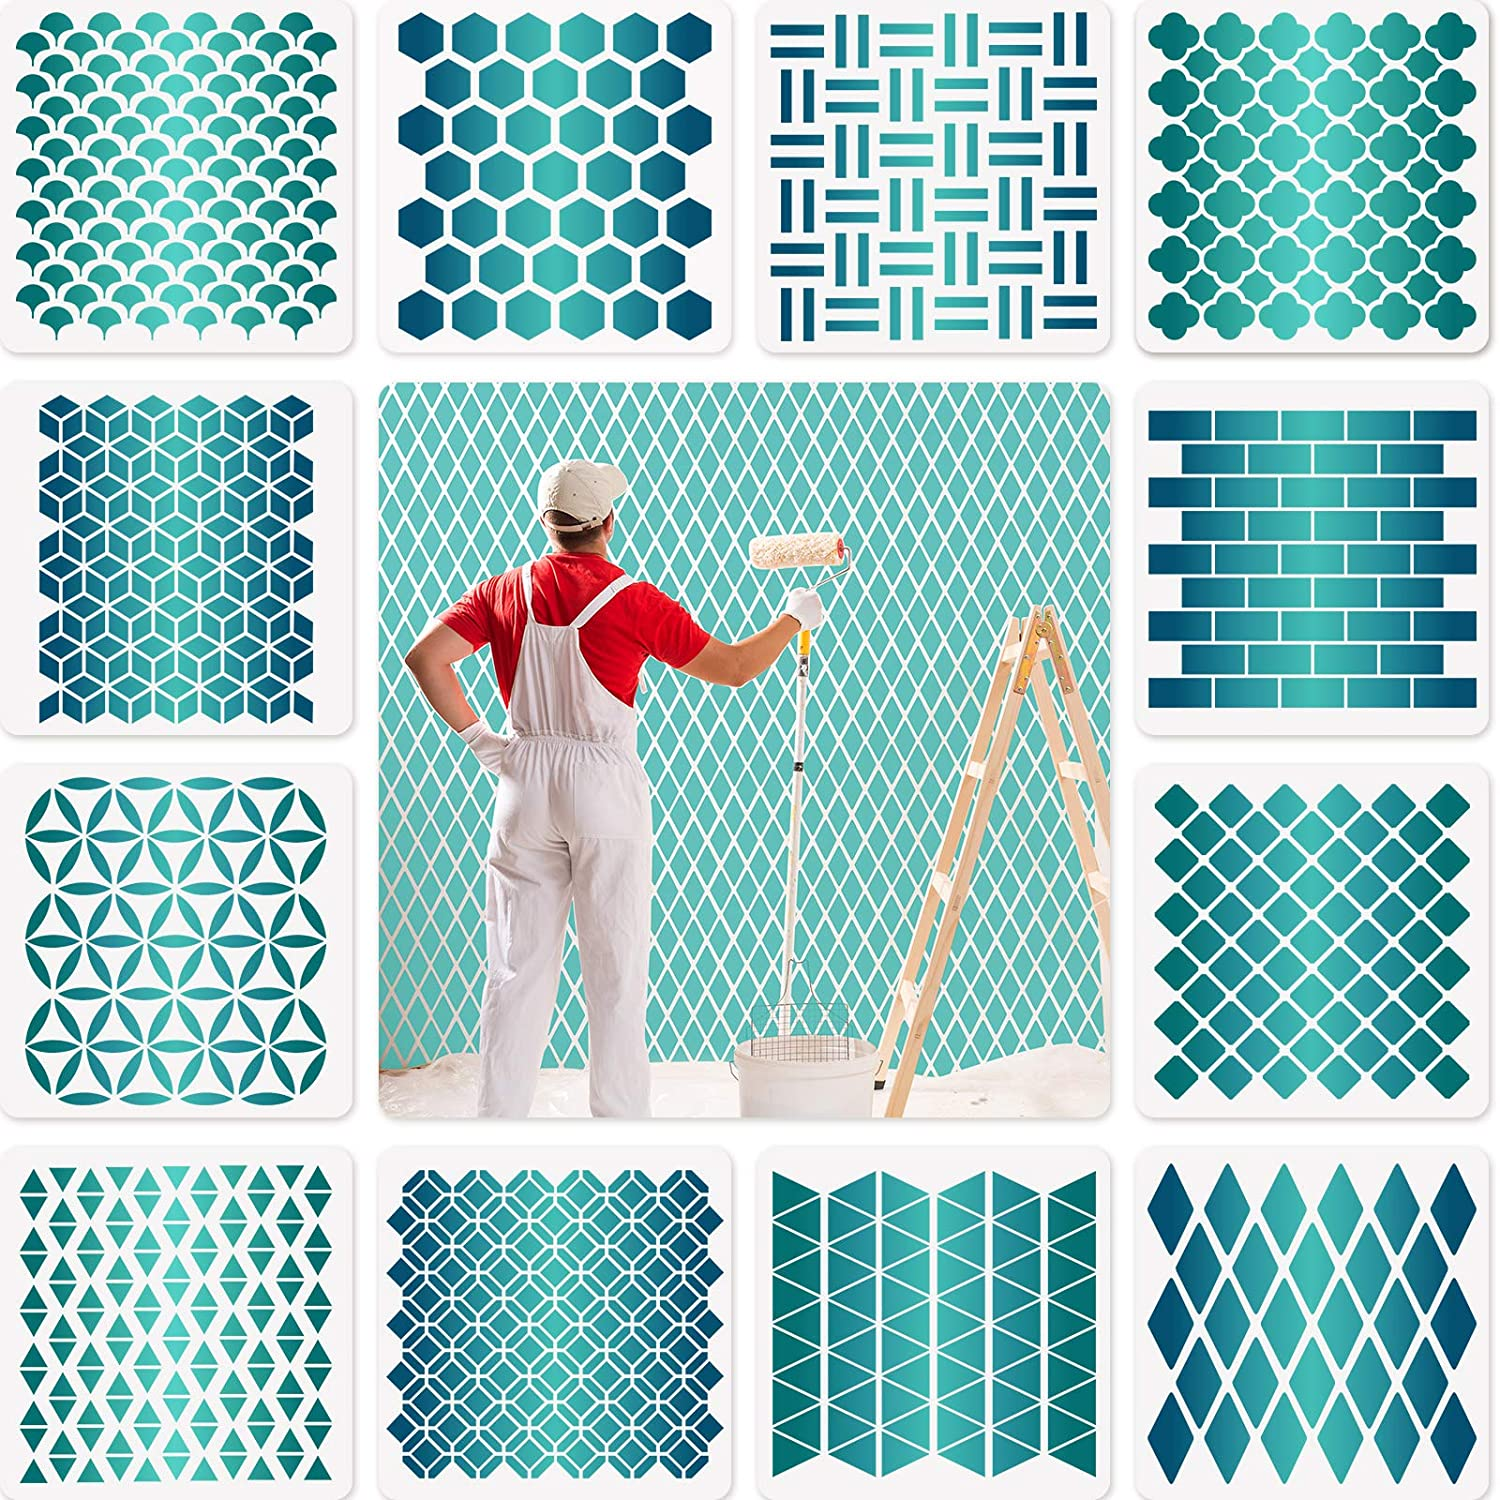 12 Sets Geometric Honeycomb Stencils Painting Sten Templates Art 5% OFF OFFicial site